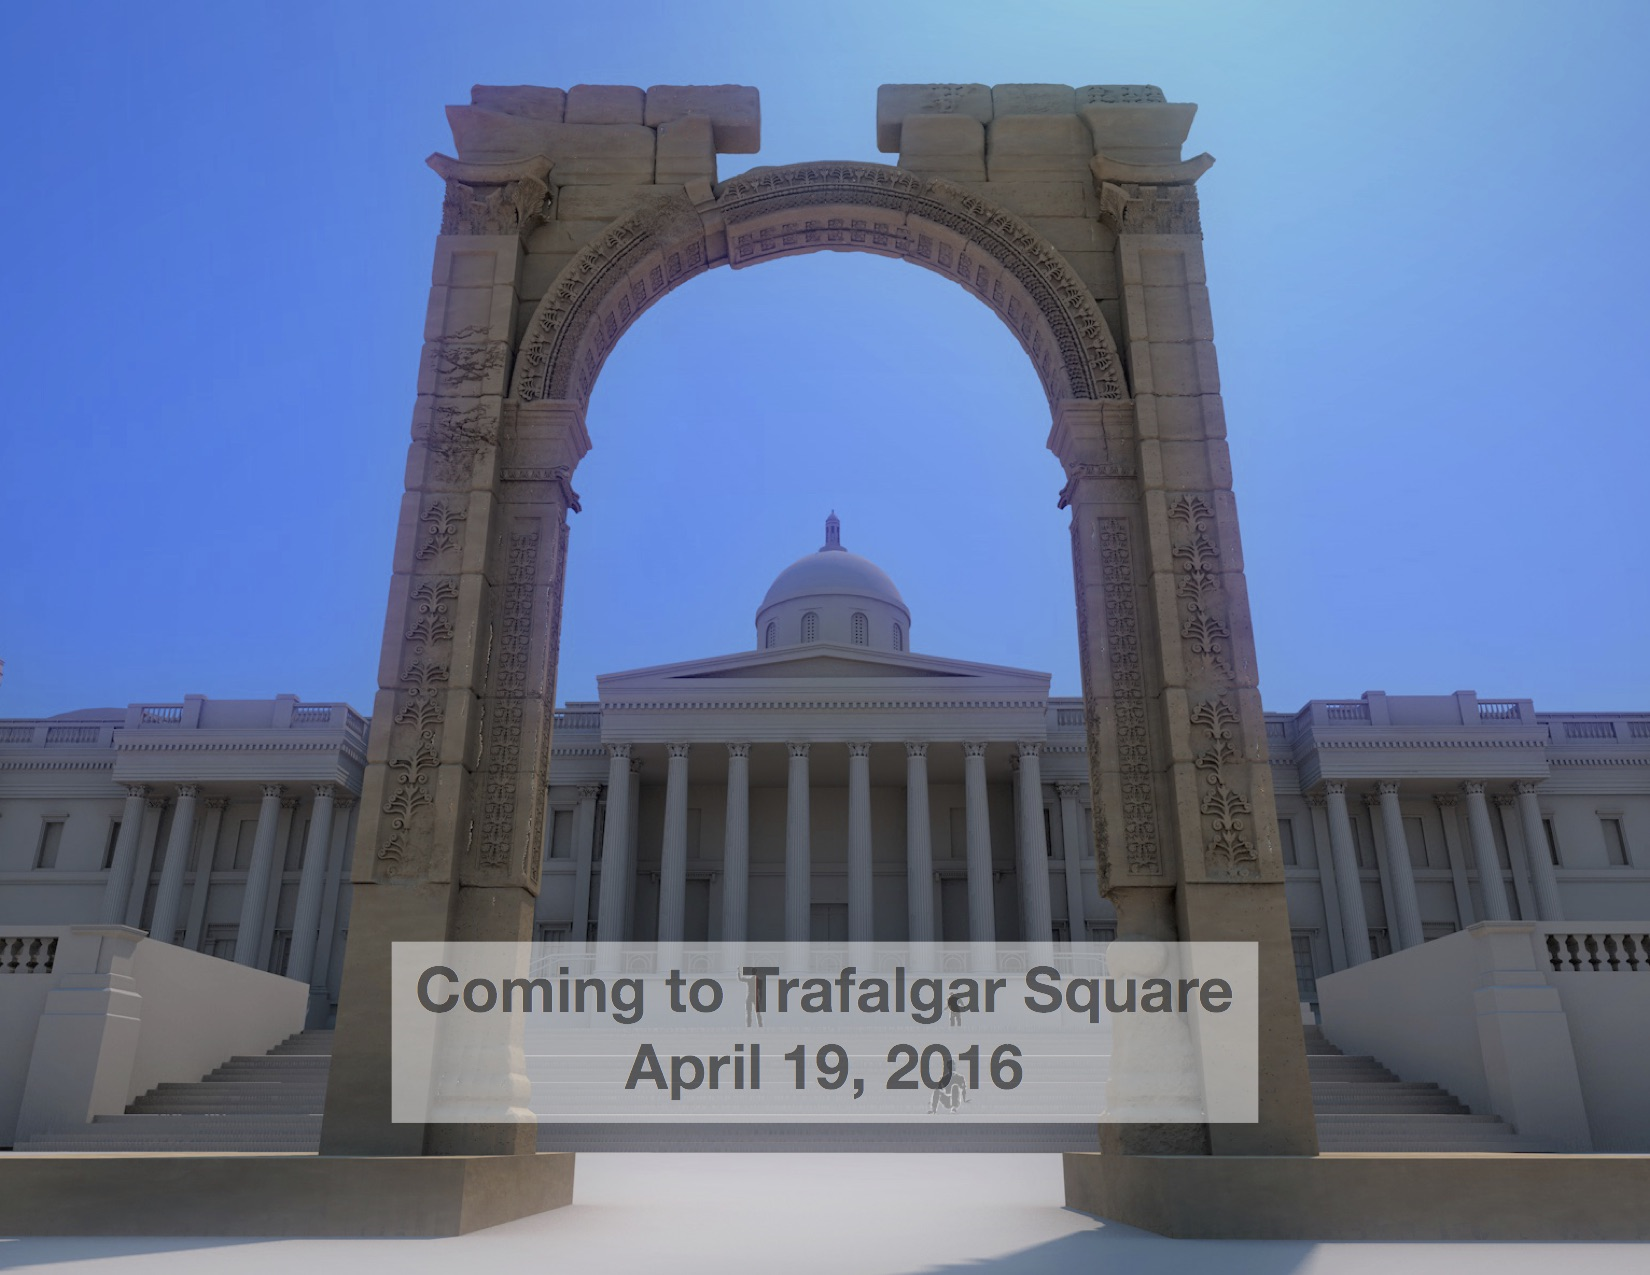 On April 19, 2016, in cooperation with national and international cultural heritage preservation organizations, and in conjunction with World Heritage Week 2016, the Institute for Digital Archaeology will install a monumental scale reconstruction of Palmyra's Triumphal Arch on Trafalgar Square. Photo Source: Digital Archaeology